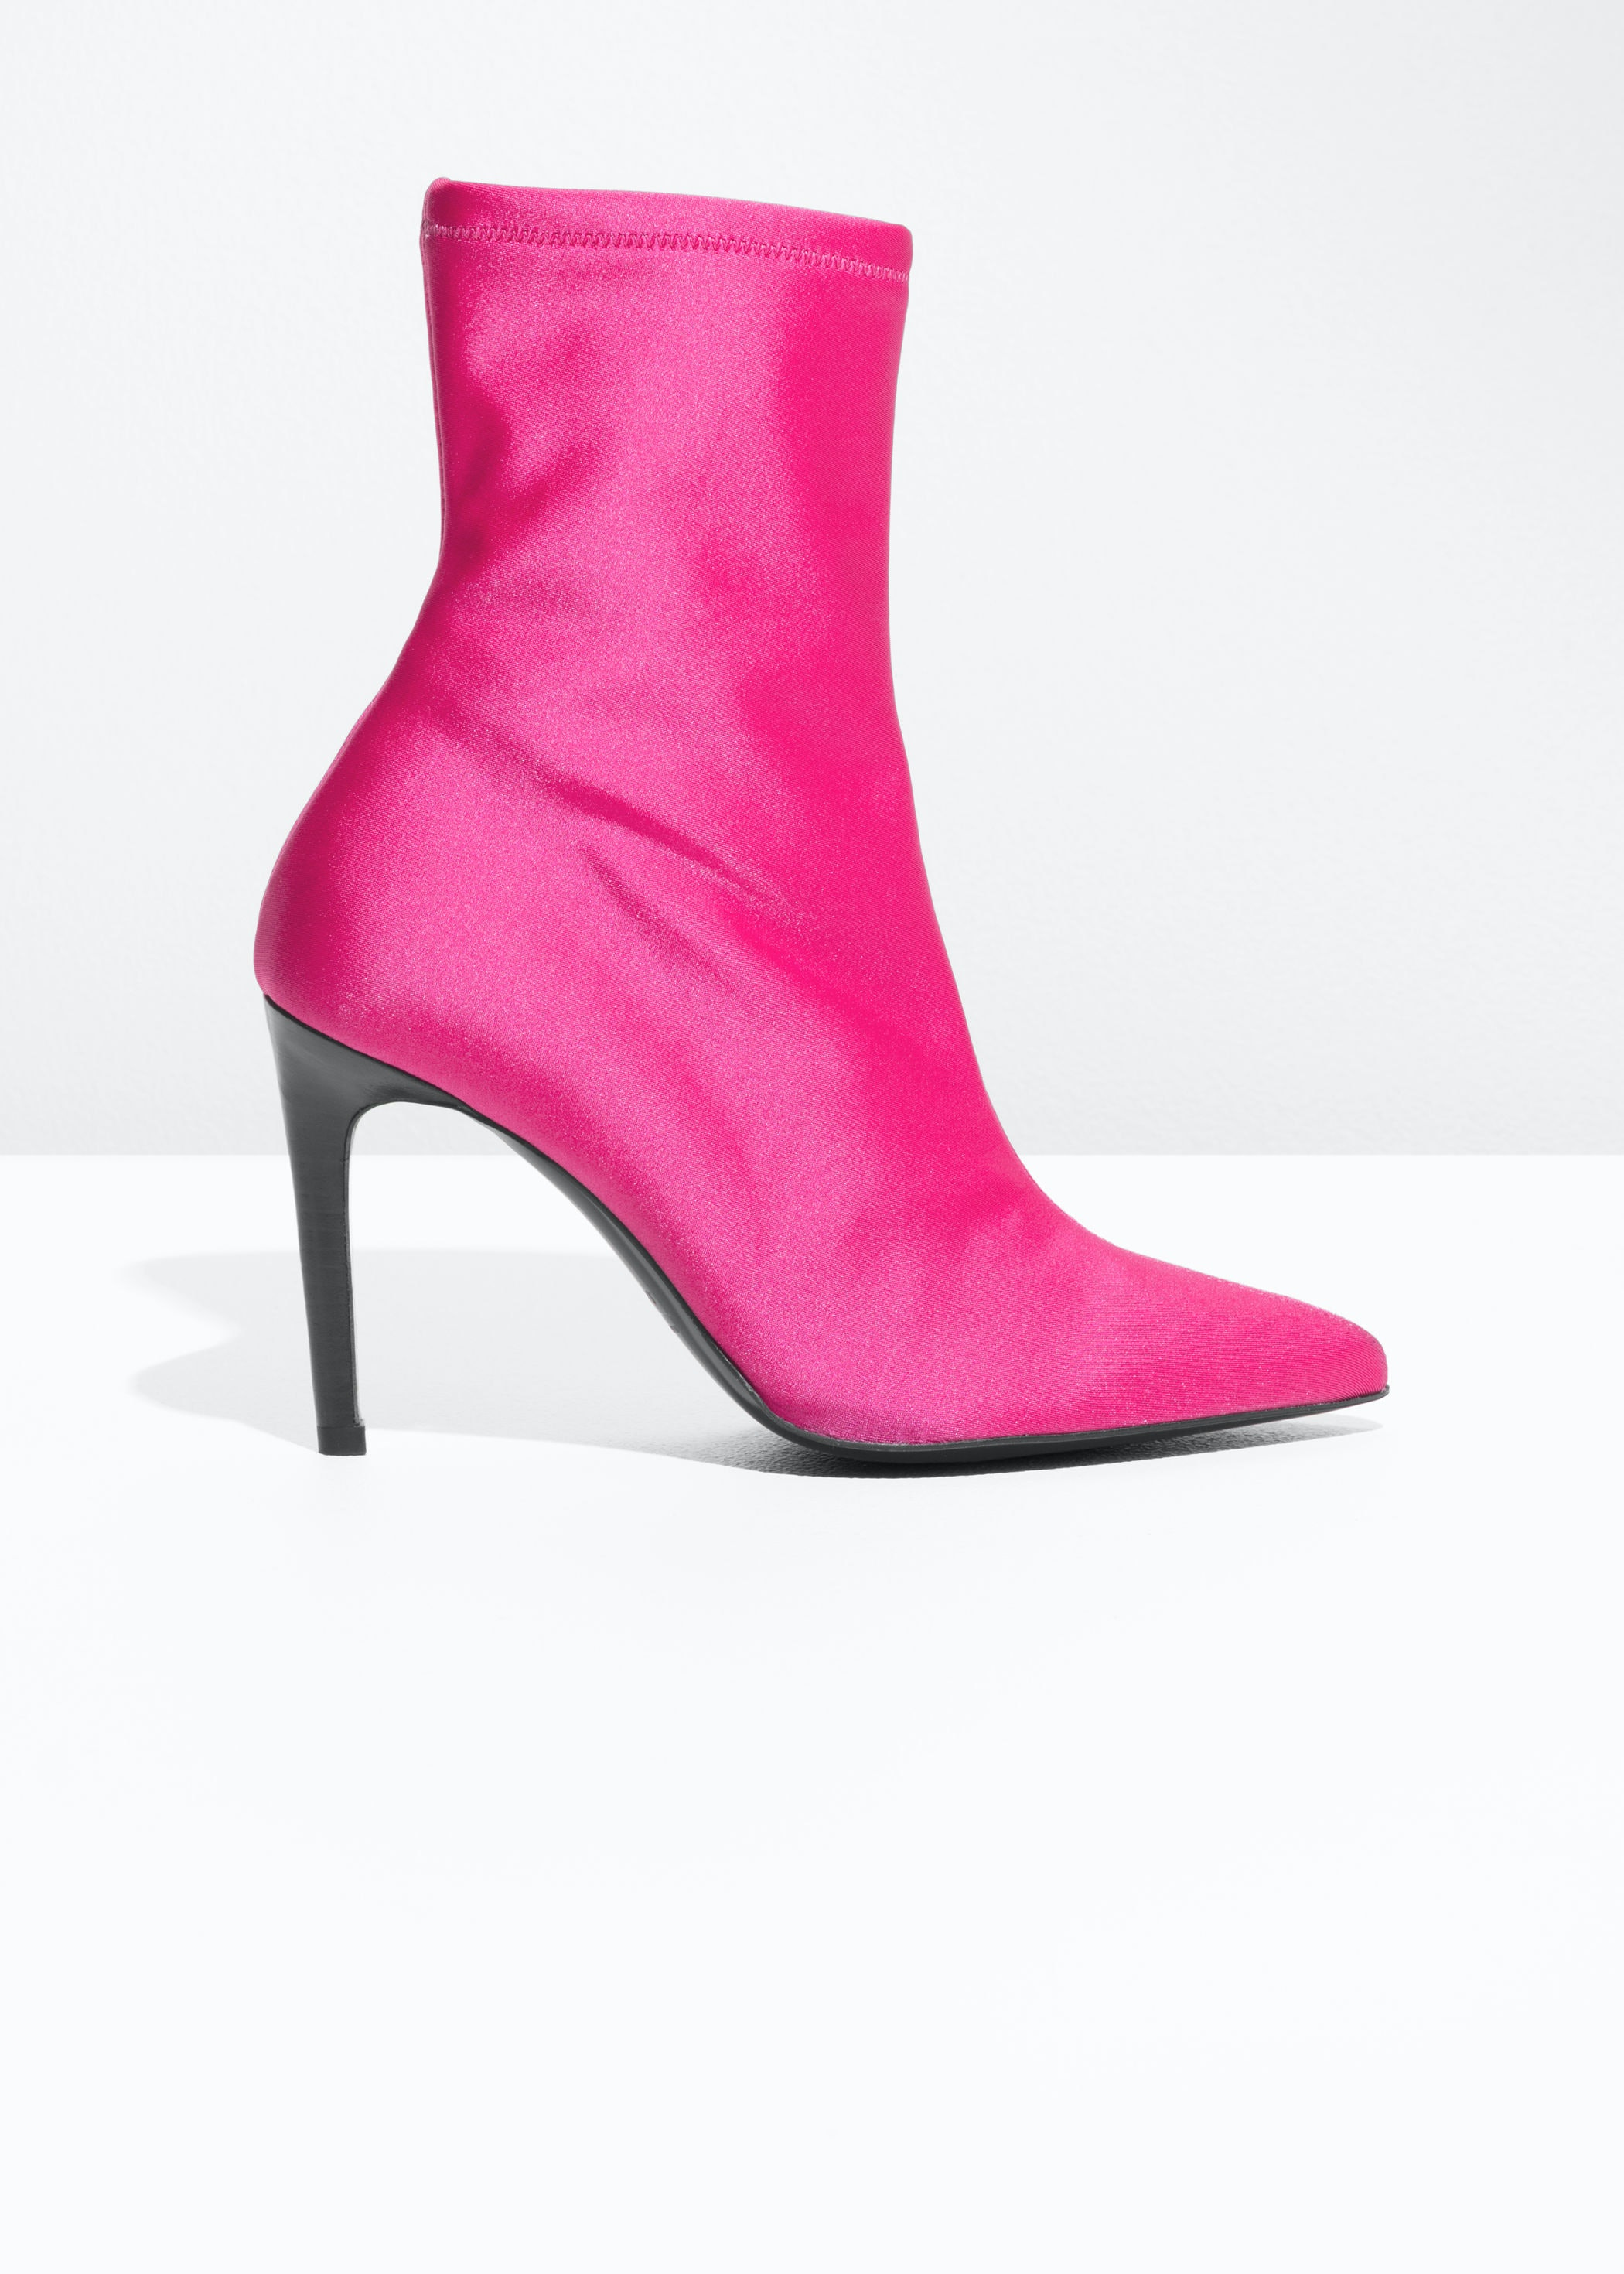 5 Ways To Pull Off The 2018 Neon Trend In Winter 0f8151158